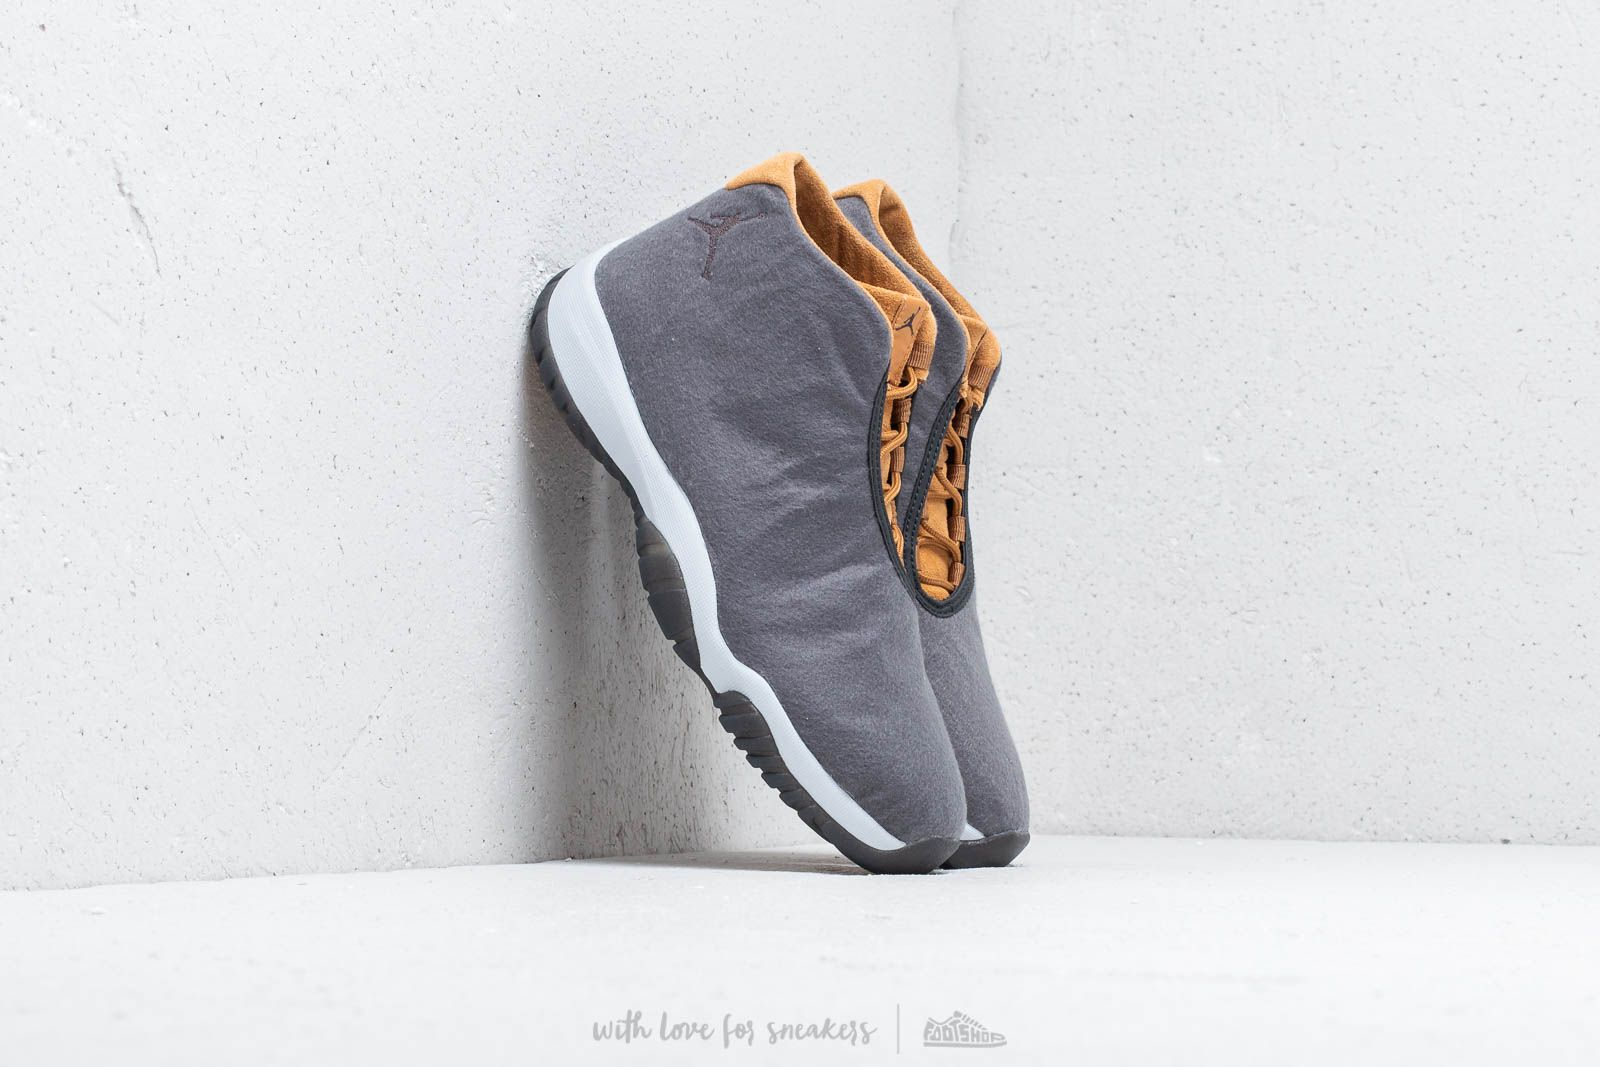 Gris Foncé Air Jordan Future Dark Grey Dark Grey Wheat Gris Fonce Bleat Gris Fonce Footshop